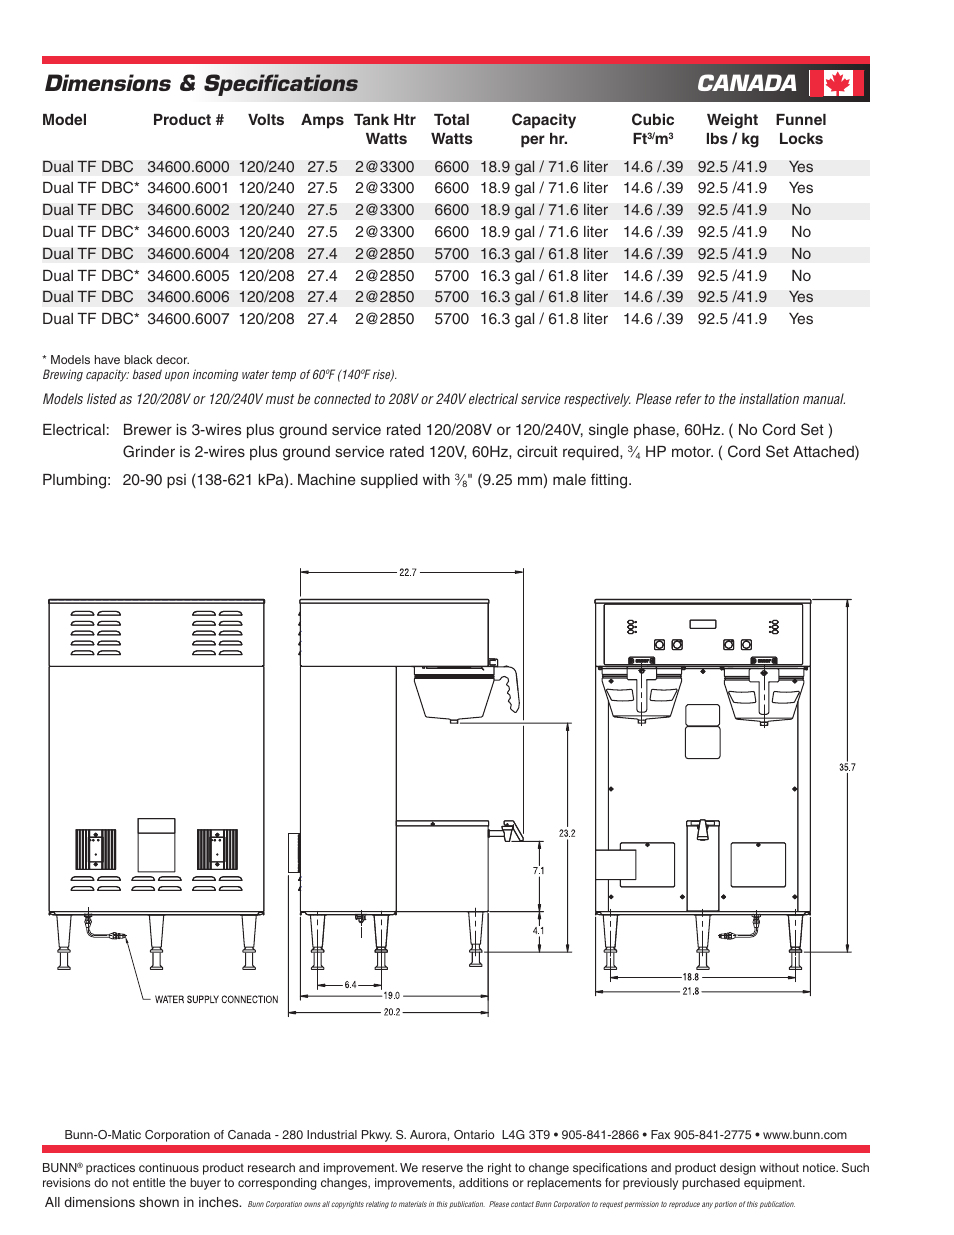 Dimensions Specifications Canada Bunn Brewwise Dual Tf Dbc User 120 To 240 V Single Phase Wiring Diagram Manual Page 2